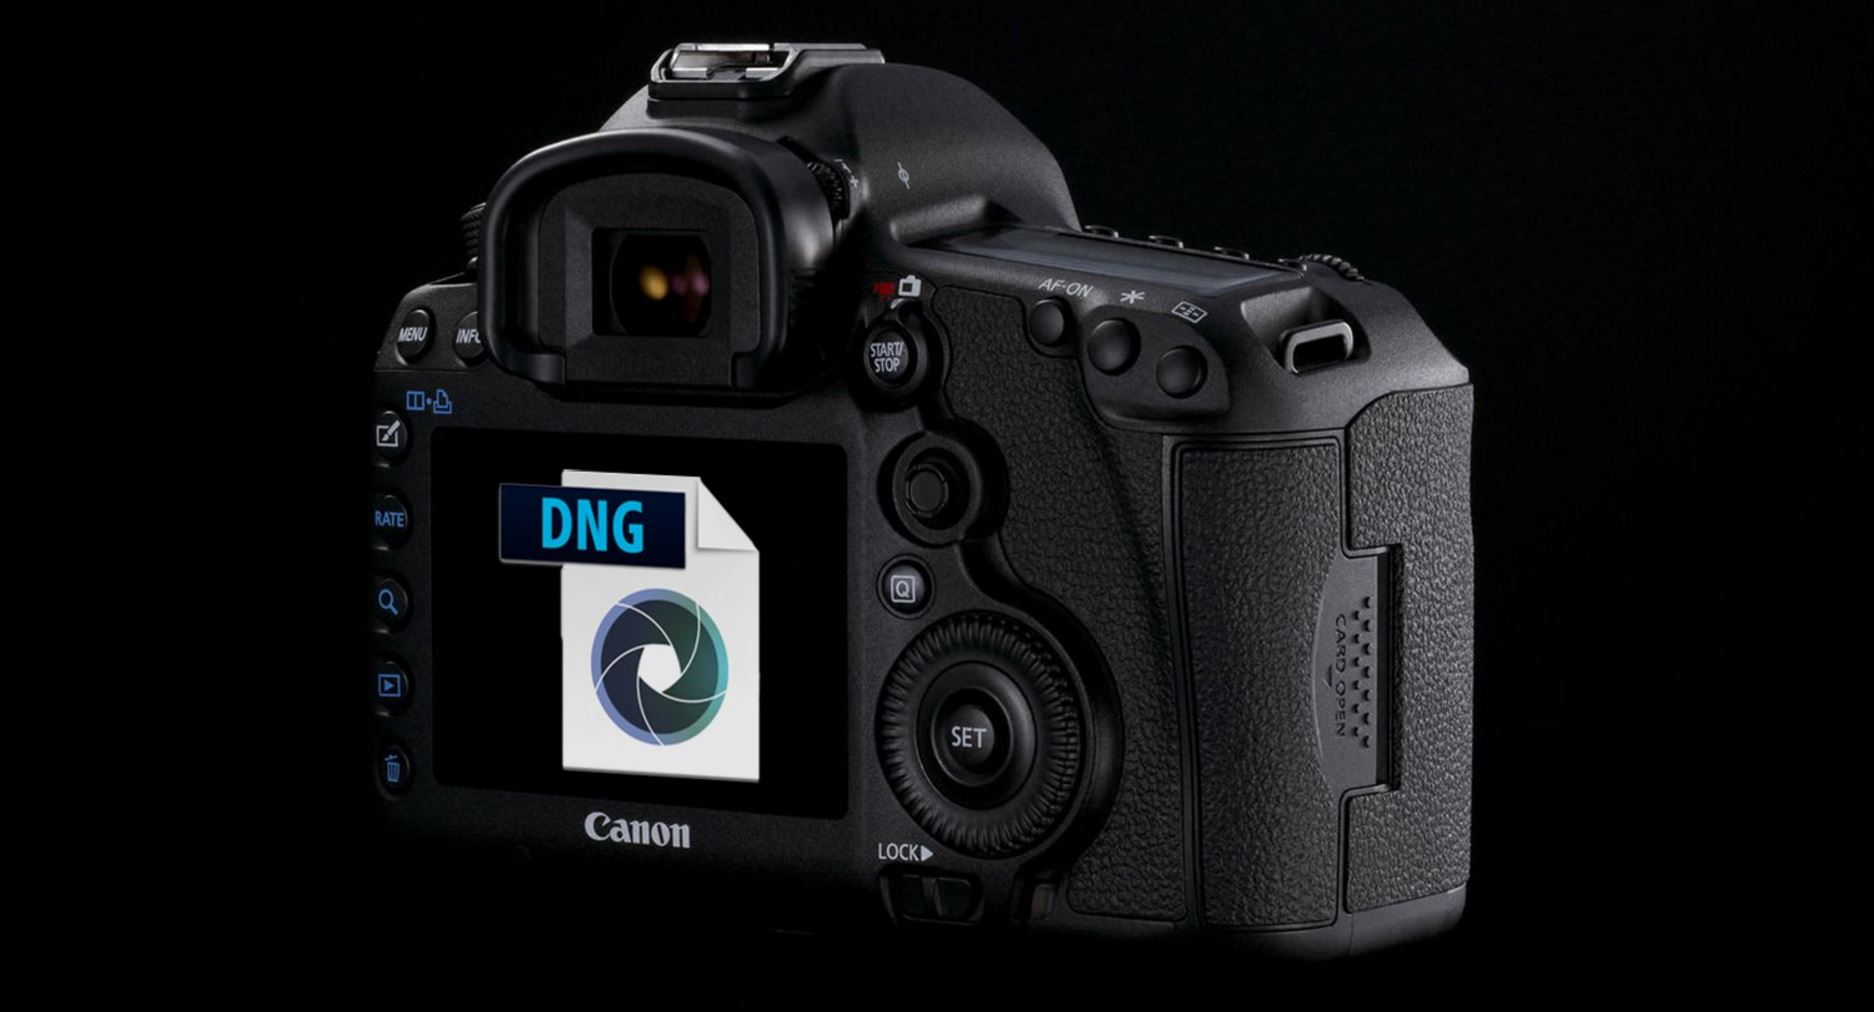 New from Magic Lantern: Shooting Lossless 14-bit DNGs In-Camera